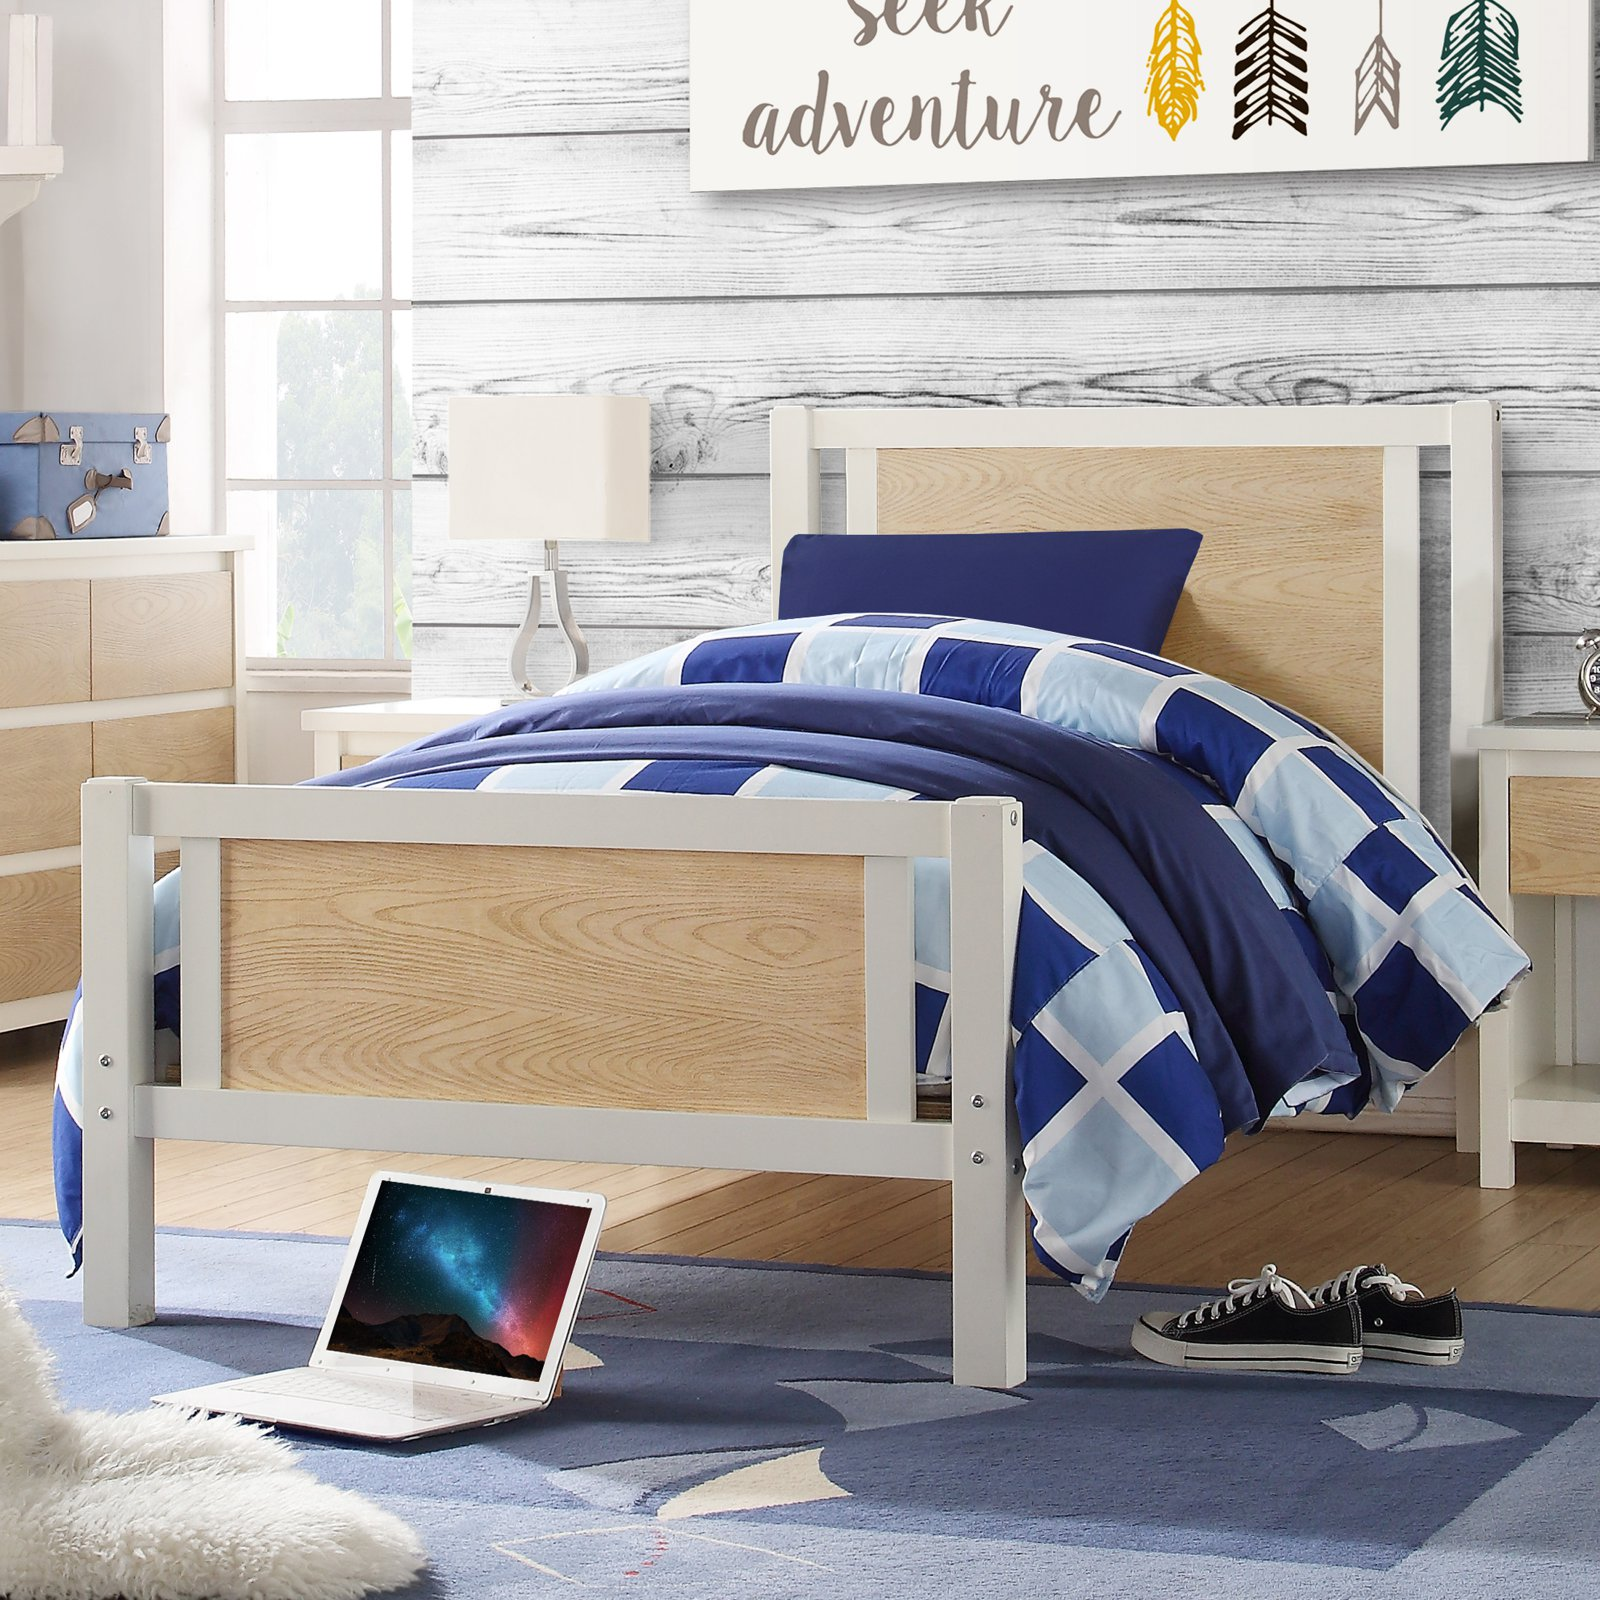 Dorel Living Blaine Youth Platform Bed - White/Natural